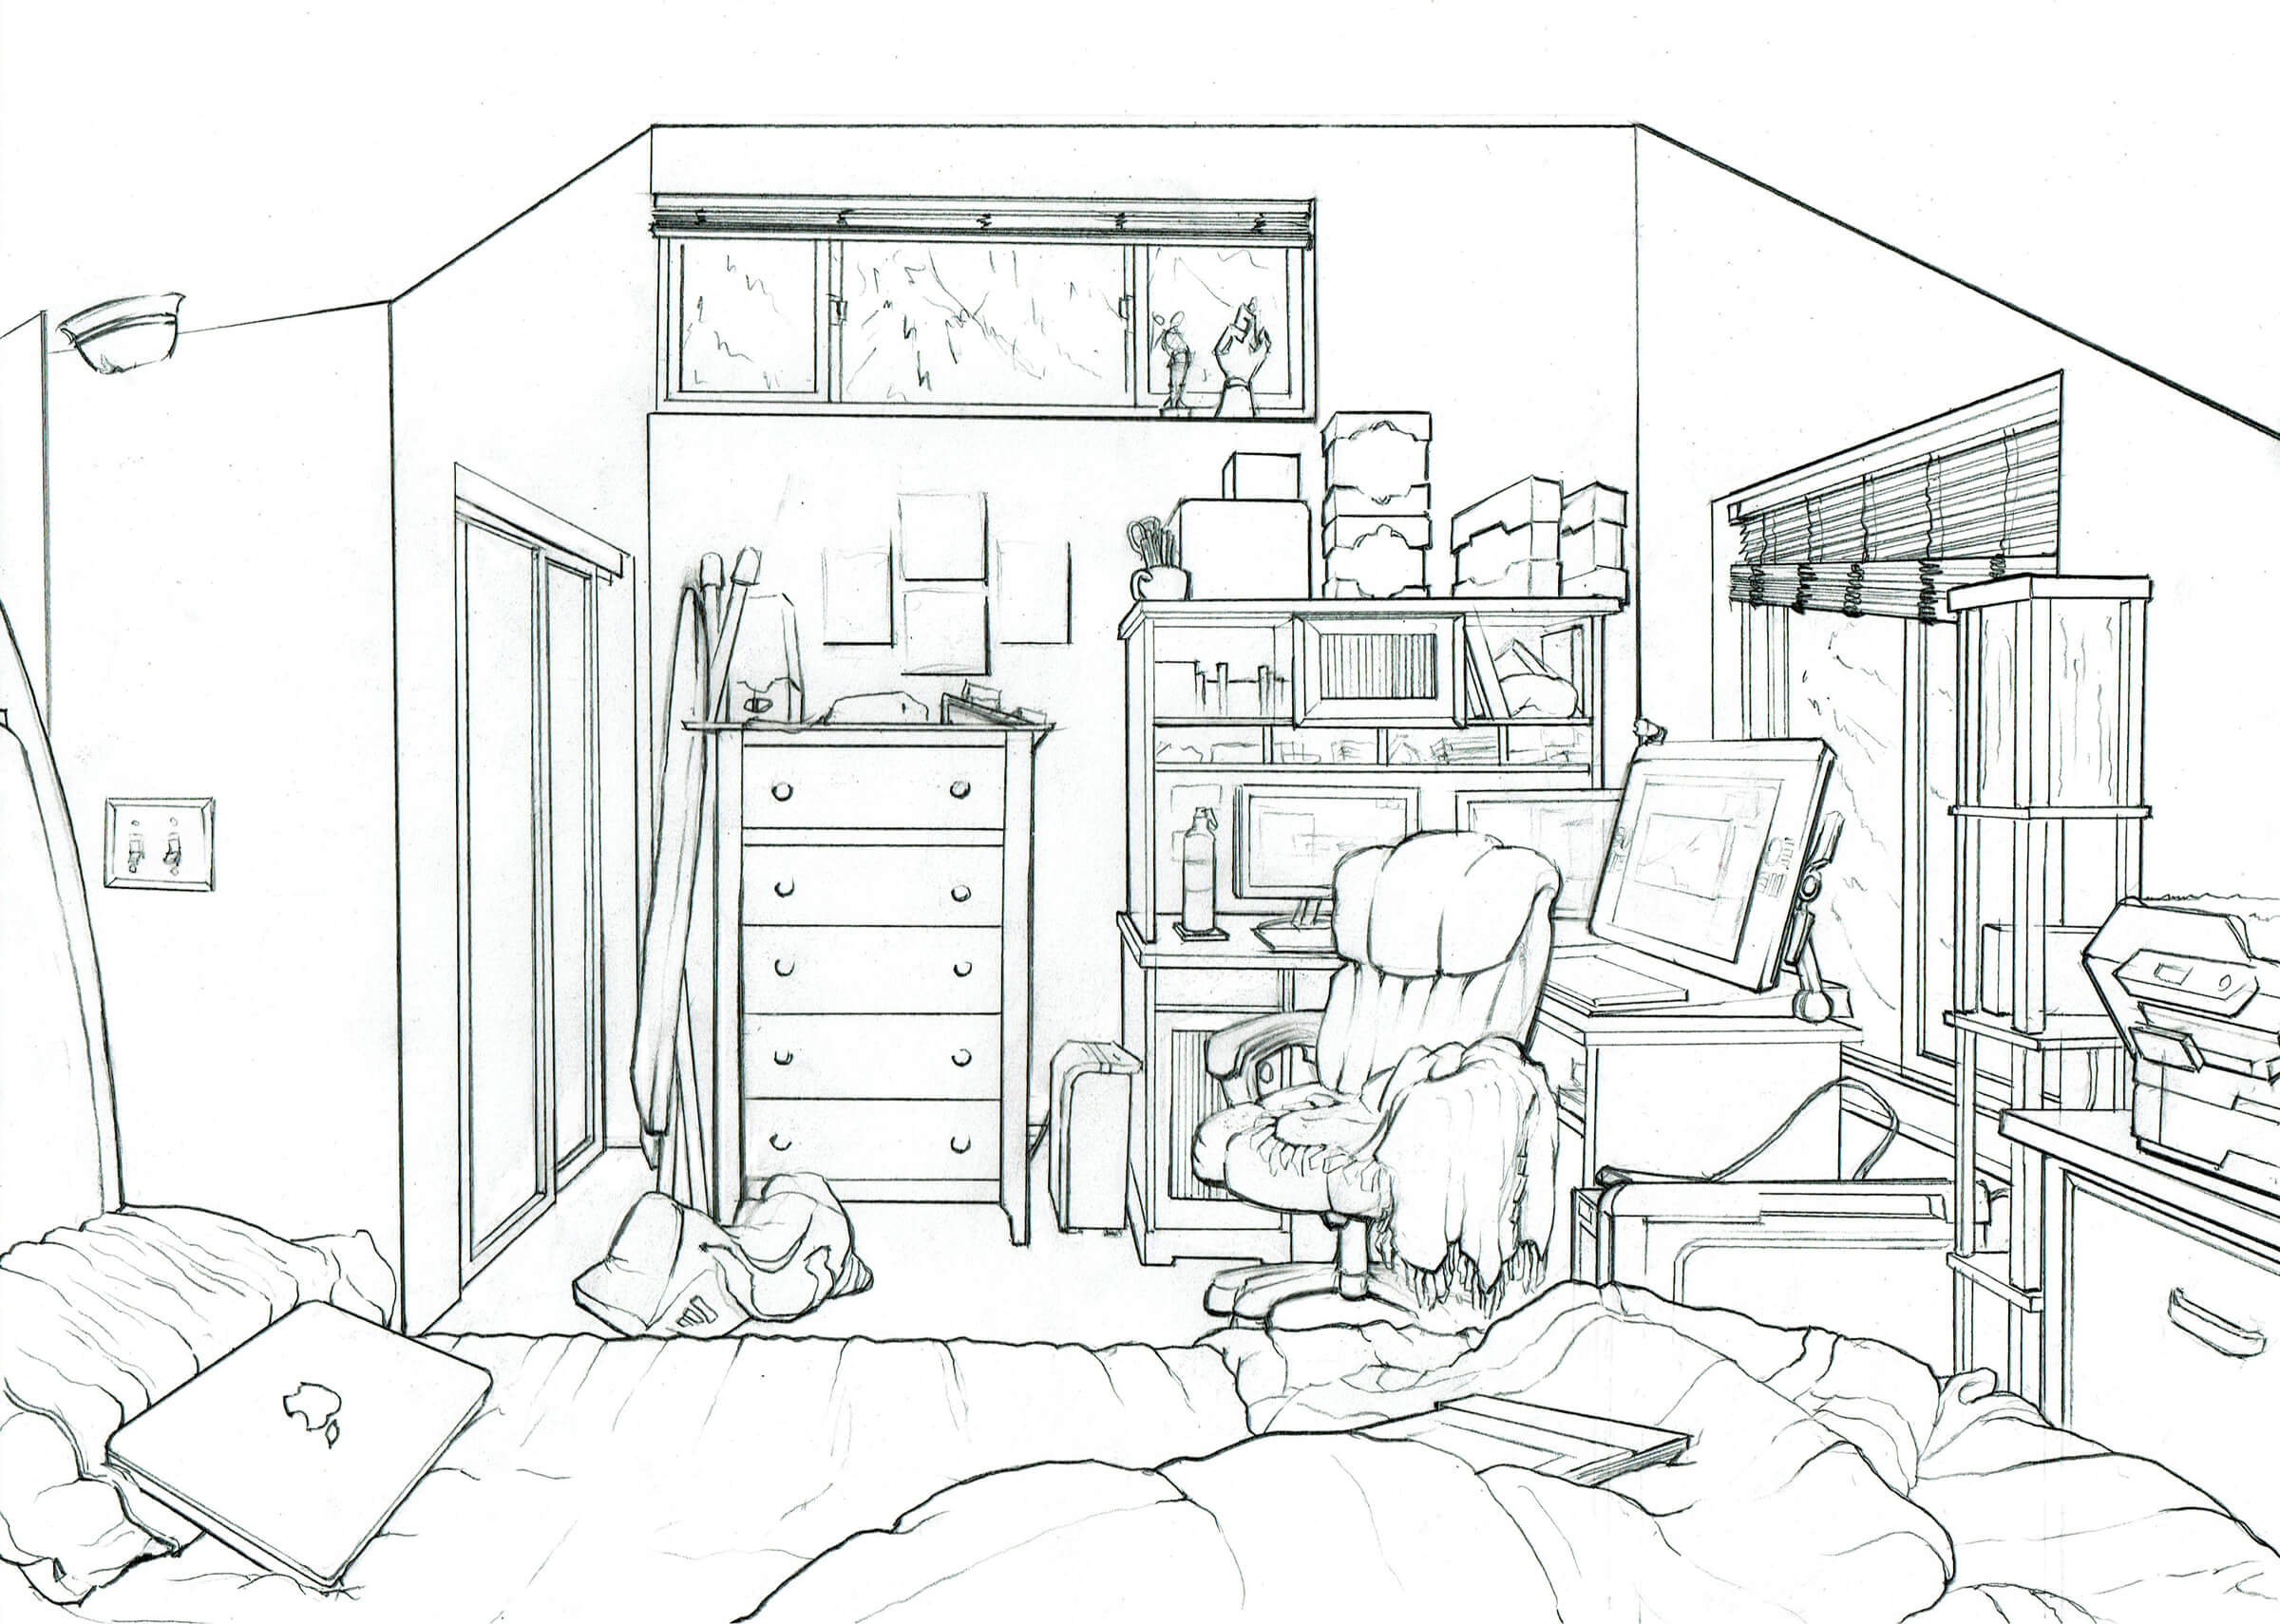 black and white persepctive drawing of a cozy bedroom with a dresser, desk with 3 computer monitors and unmade bed